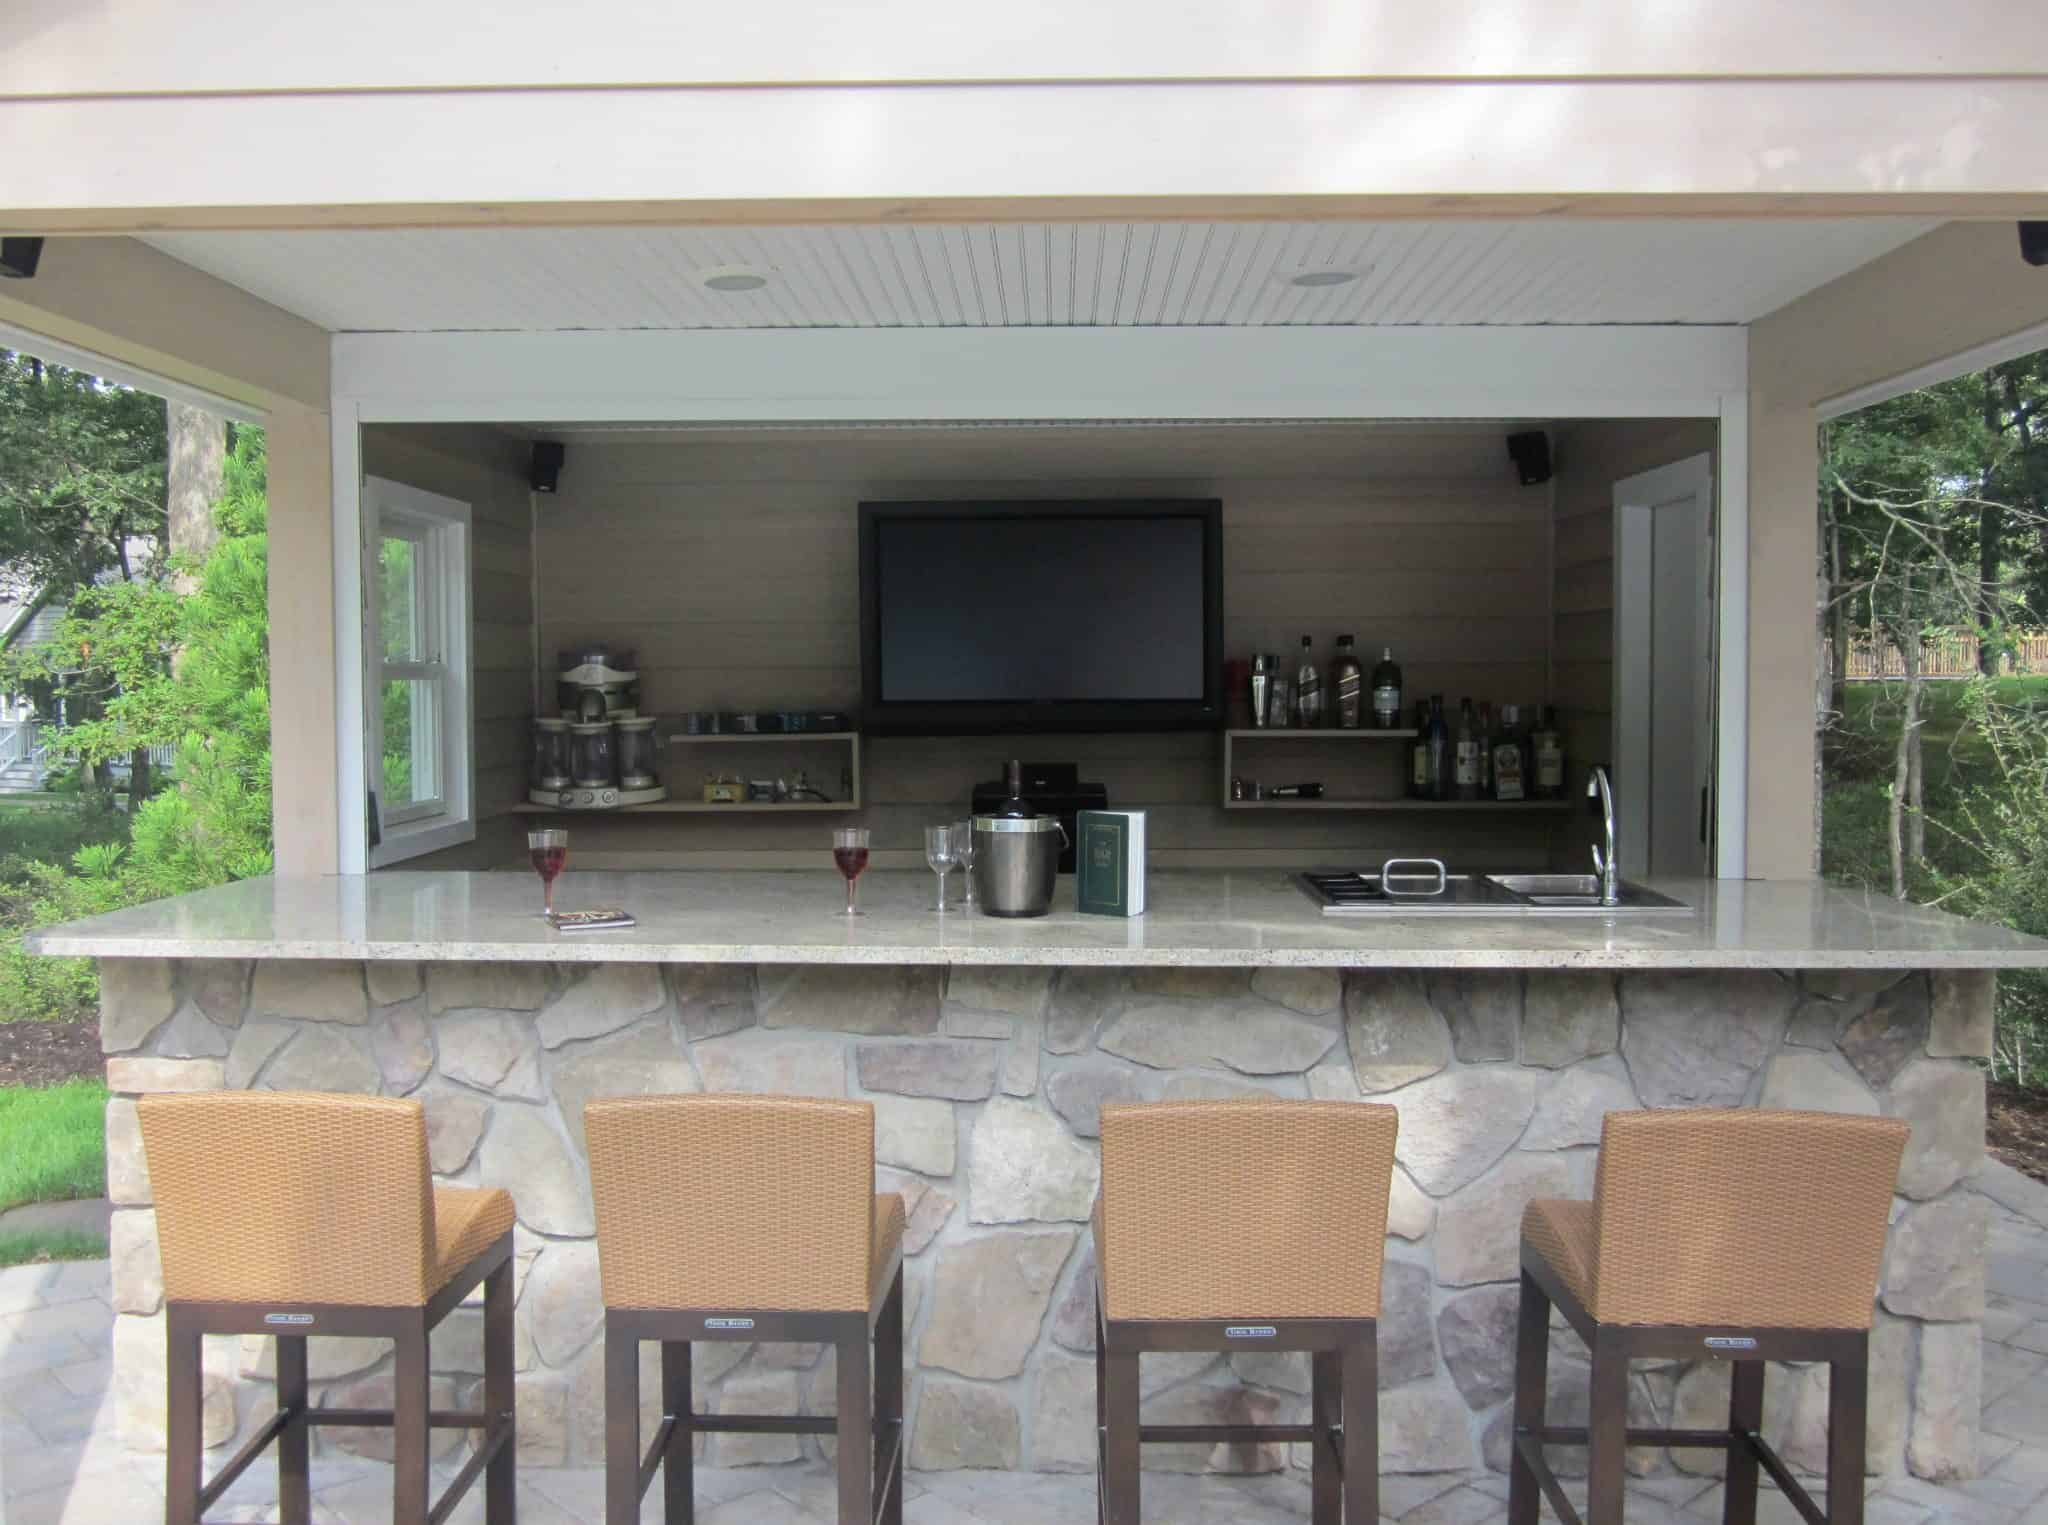 Outdoor bar and granite countertop veneered in Dressed Field Stone - Bucks County - Hampton Bays, Long Island NY